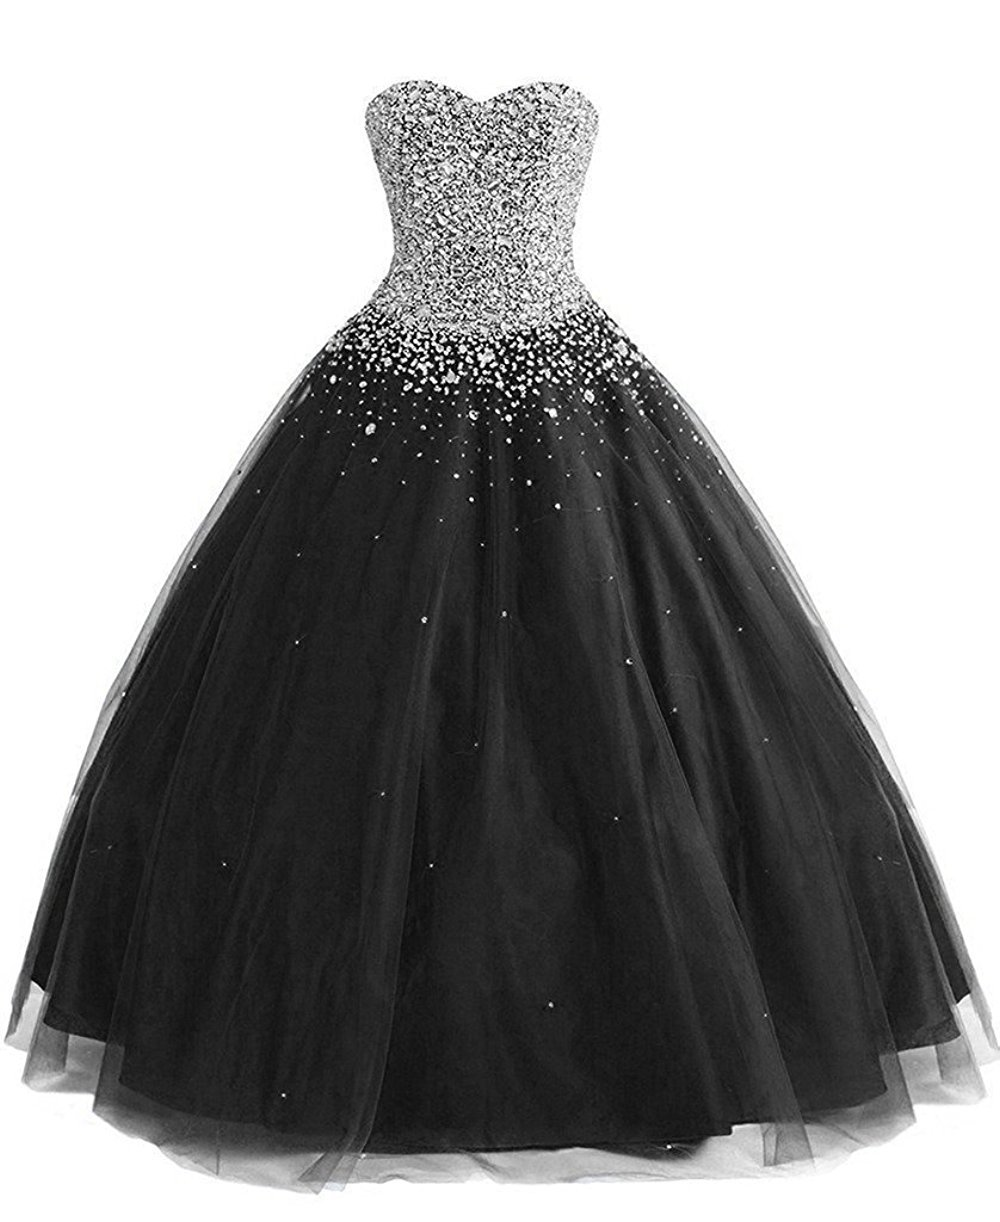 Meilishuo Women's Sweetheart Sparkly Beading Quinceanera Dresses Long 2017 Prom Party Ball Gown With Rhinestones